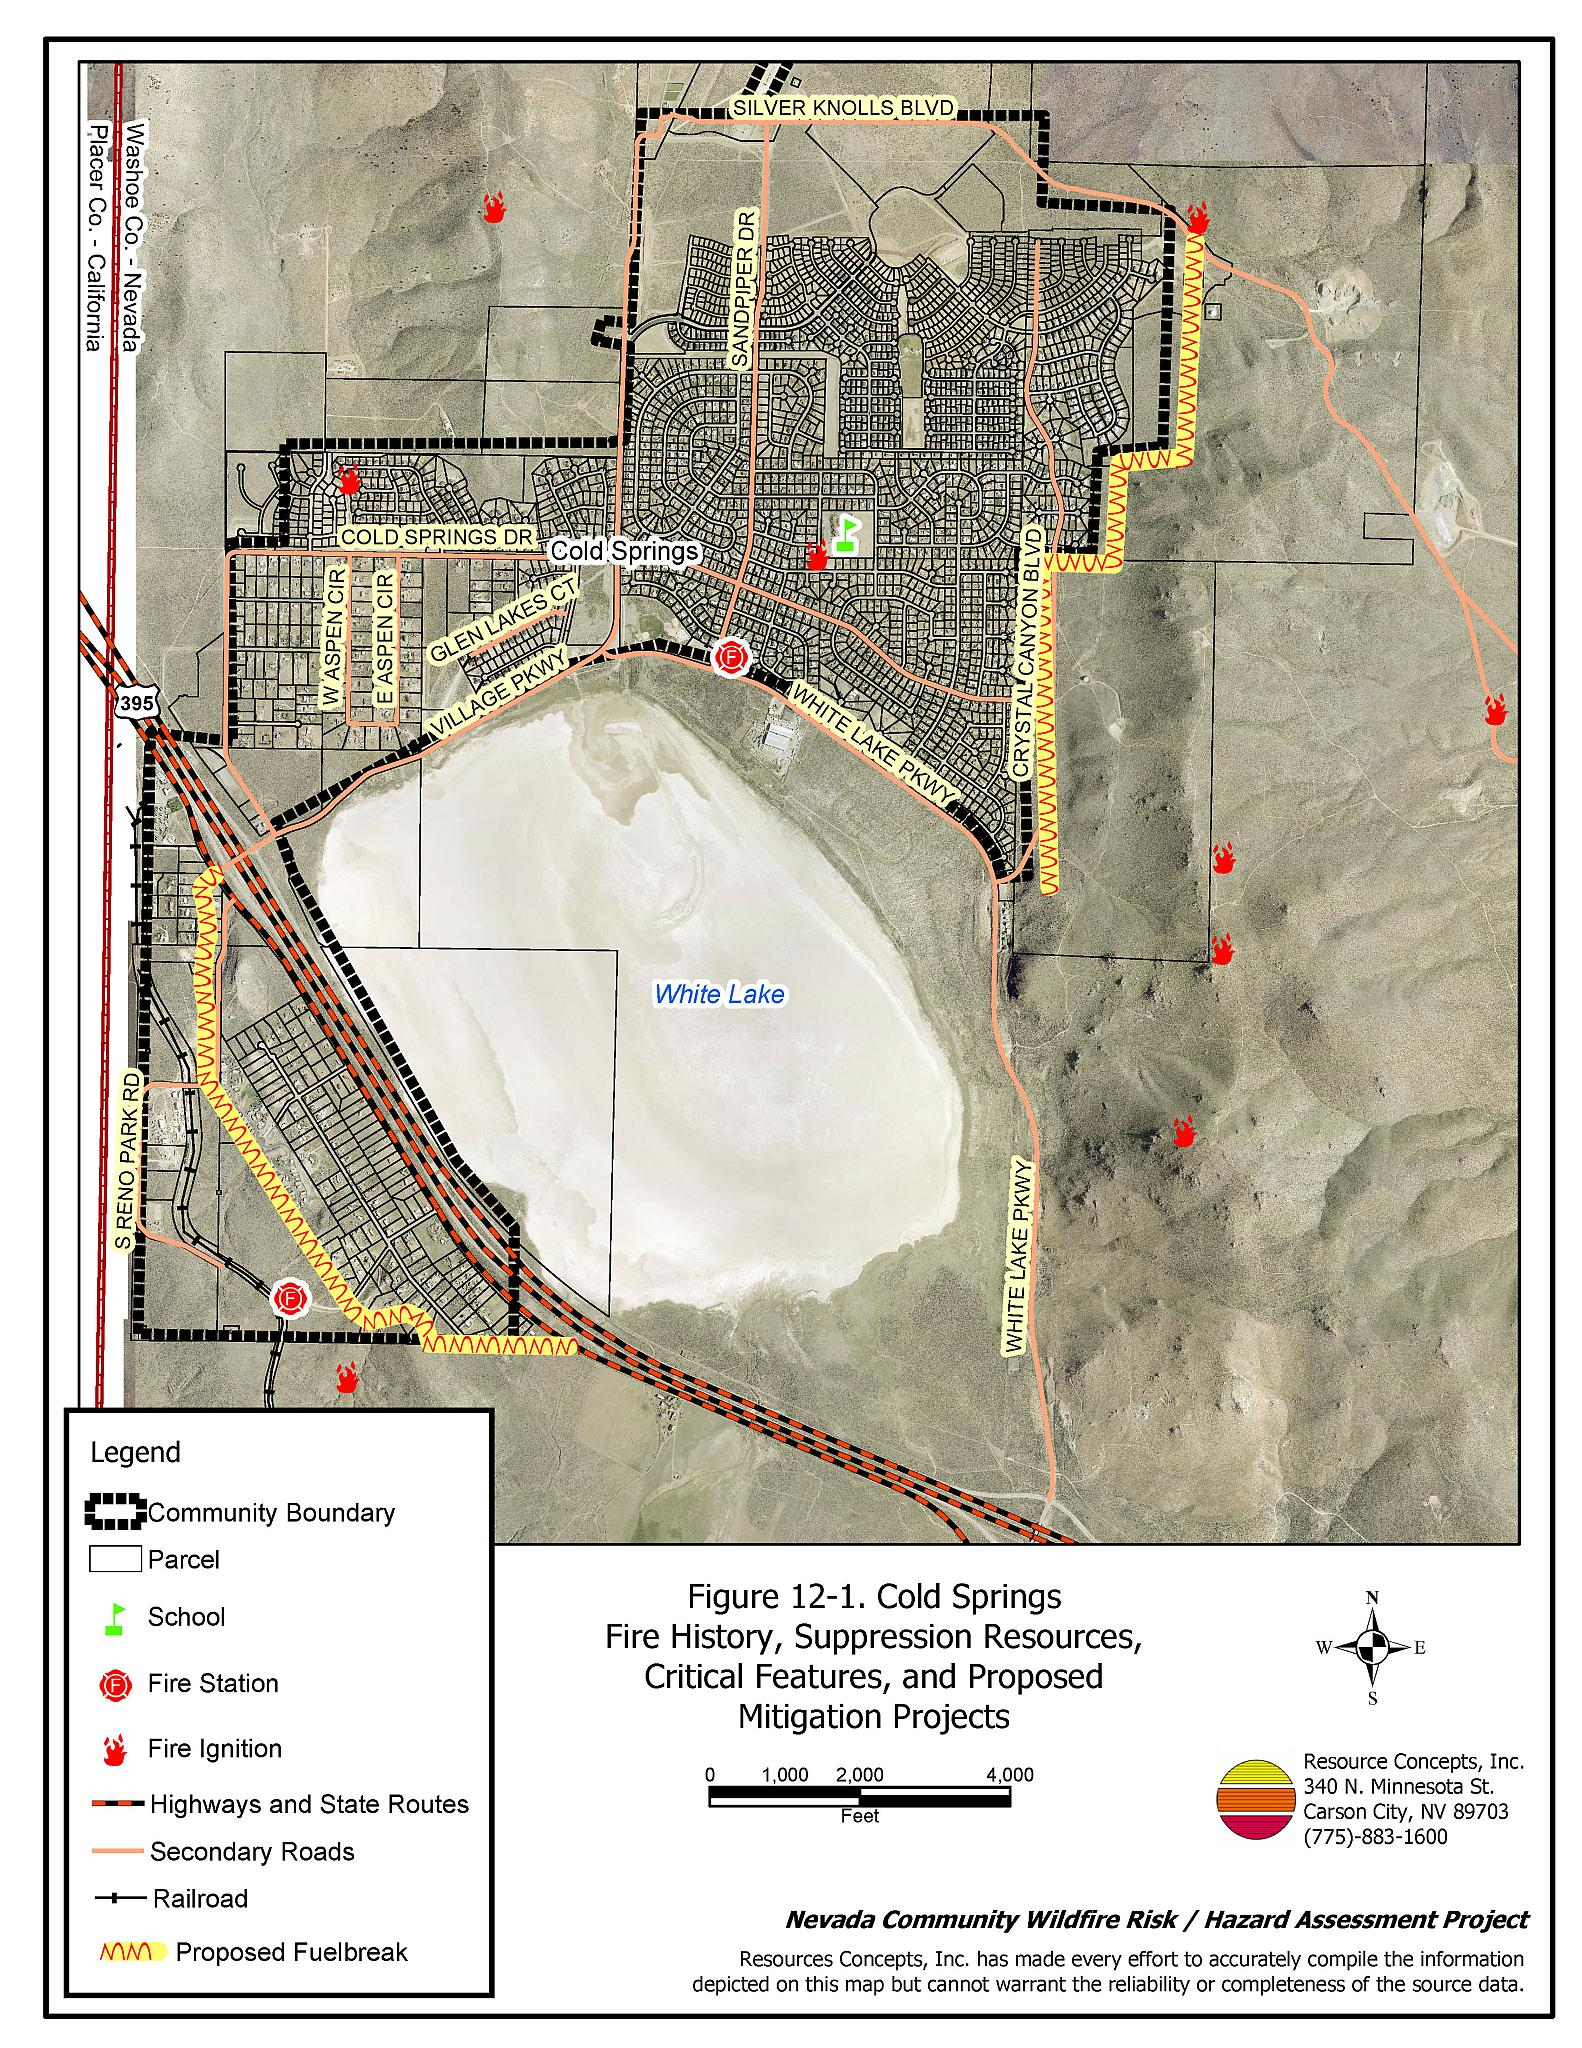 12 0 Cold Springs Washoe County Fire Plan Nevada Community